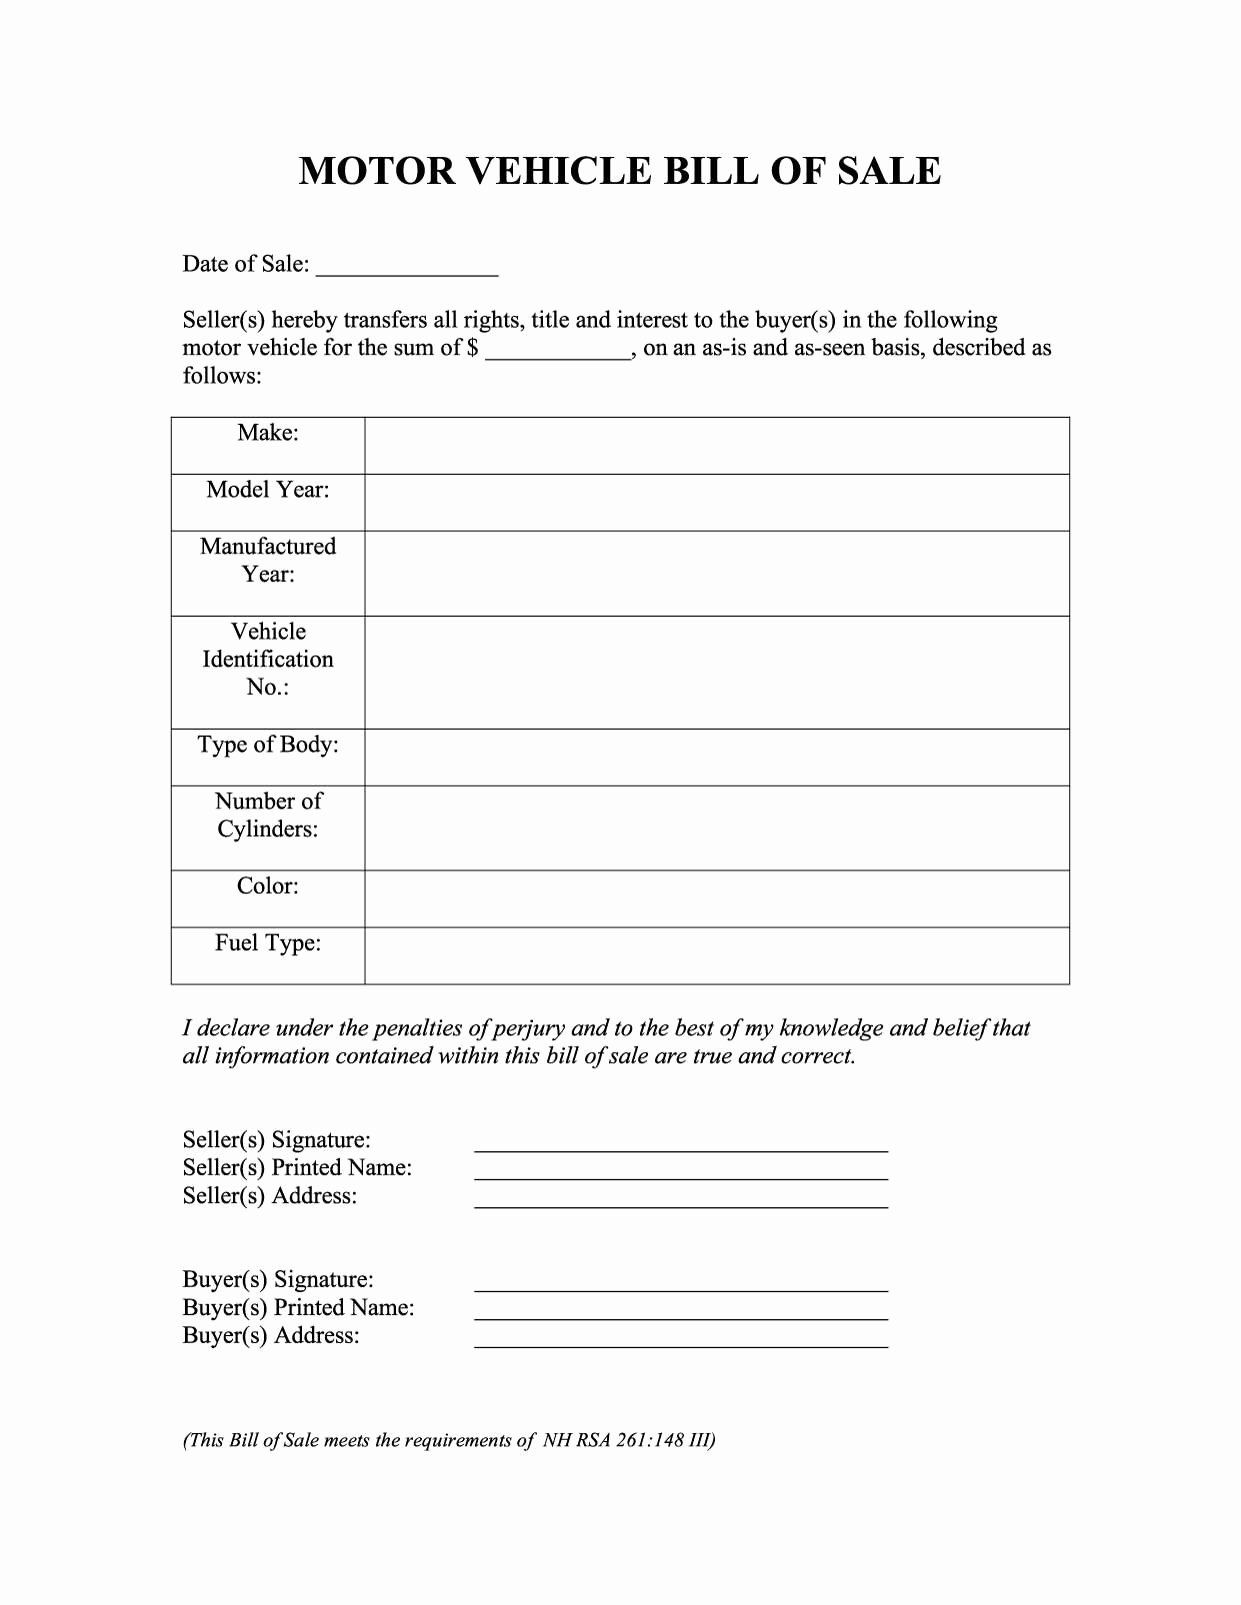 Pin On Example Document Templates Design Printable Bill of sale wording template